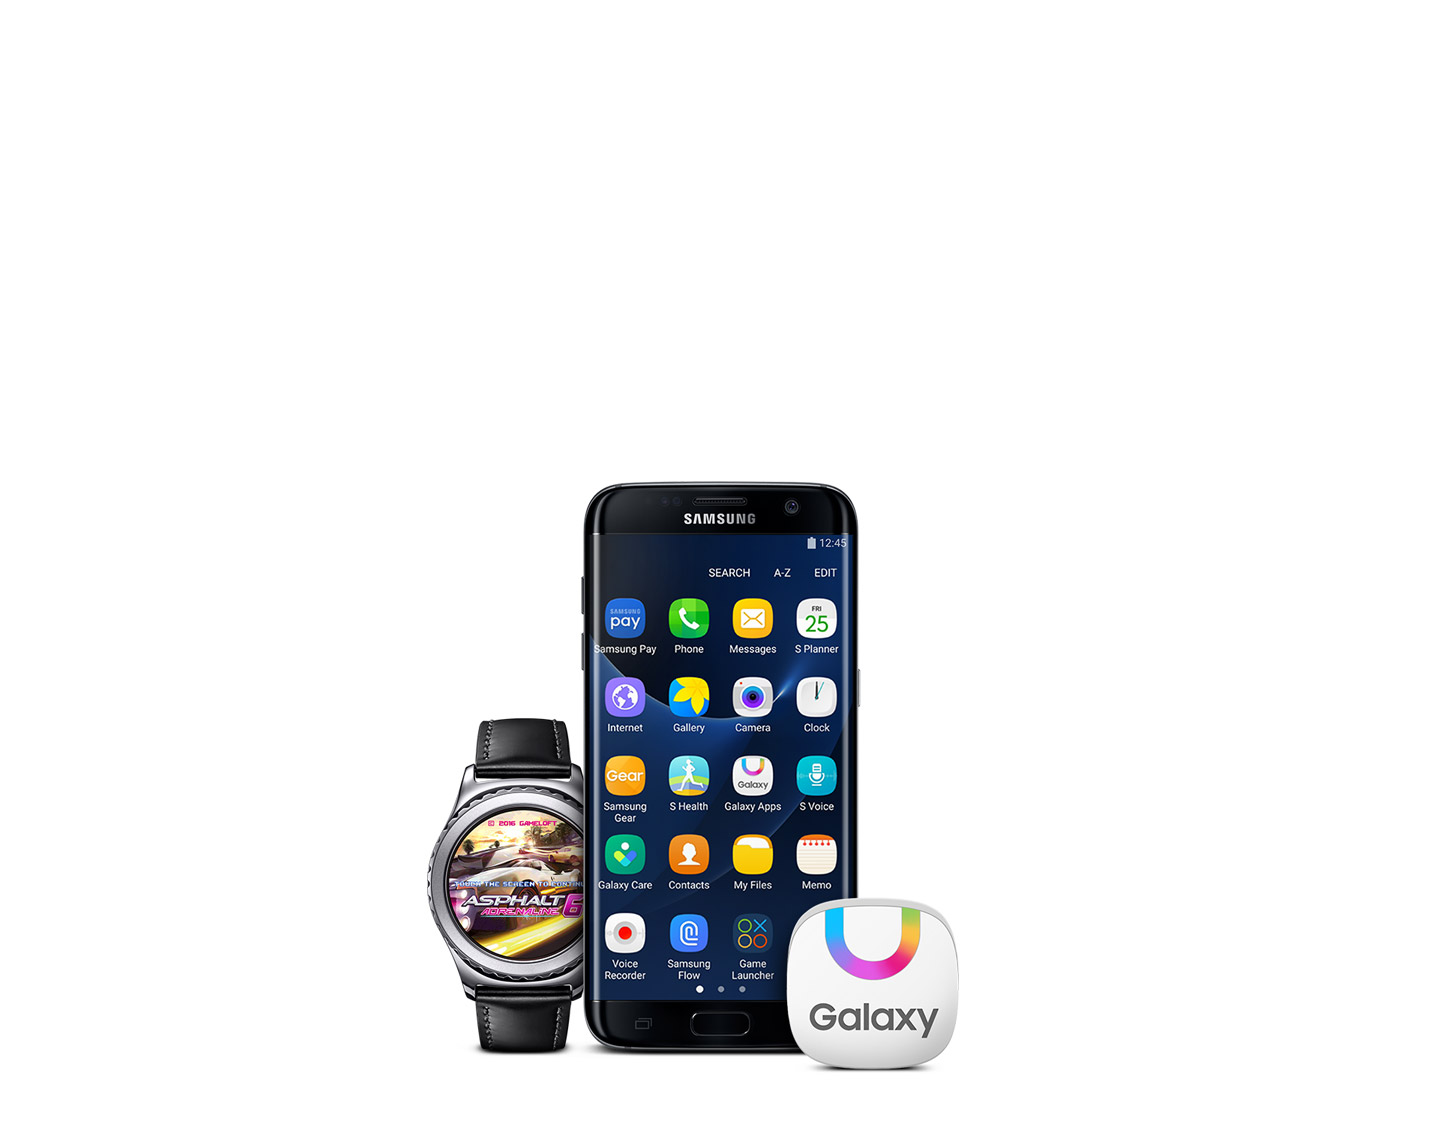 galaxy apps apps the official samsung galaxy site galaxy app store icon on home screen of galaxy s7 edge which is synced to the